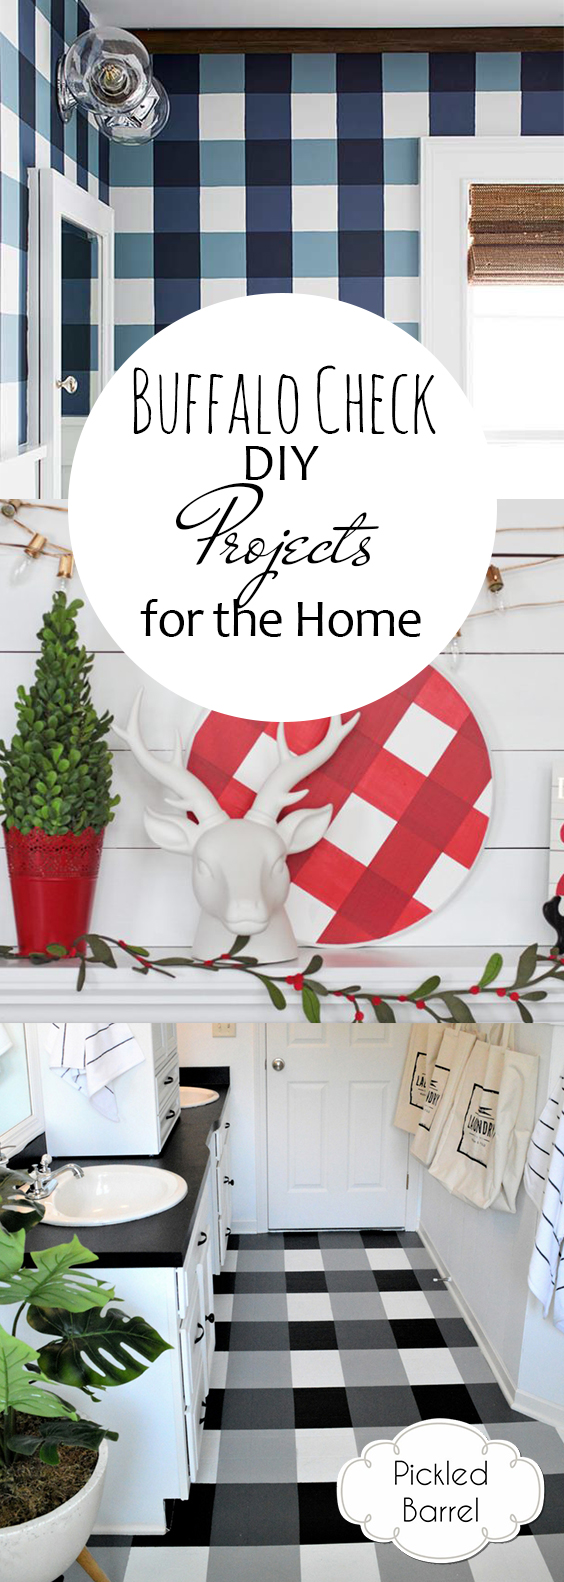 Buffalo Check DIY Projects for the Home| DIY Projects, Buffalo Checkered Projects, Buffalo Plaid Home Decor, DIY Home Decor, Popular Pin #DIYProjects #BuffaloPlaid